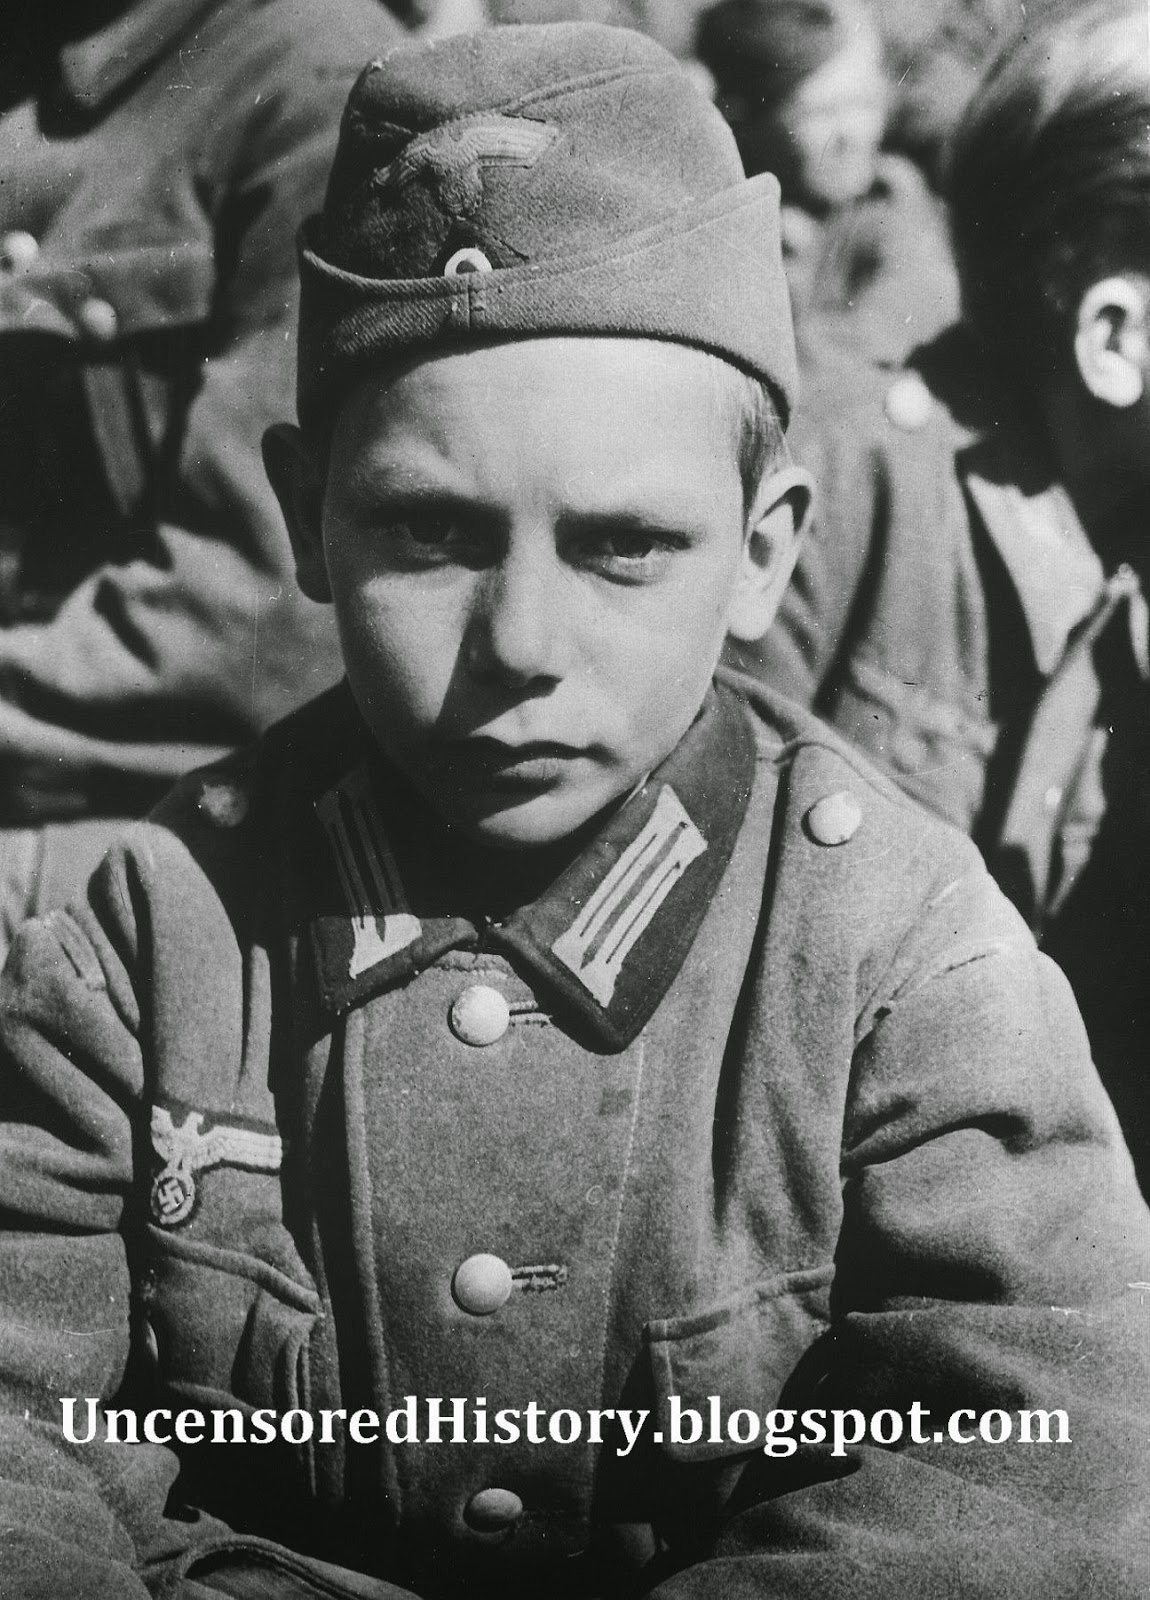 Hitler Youth boy april 1945